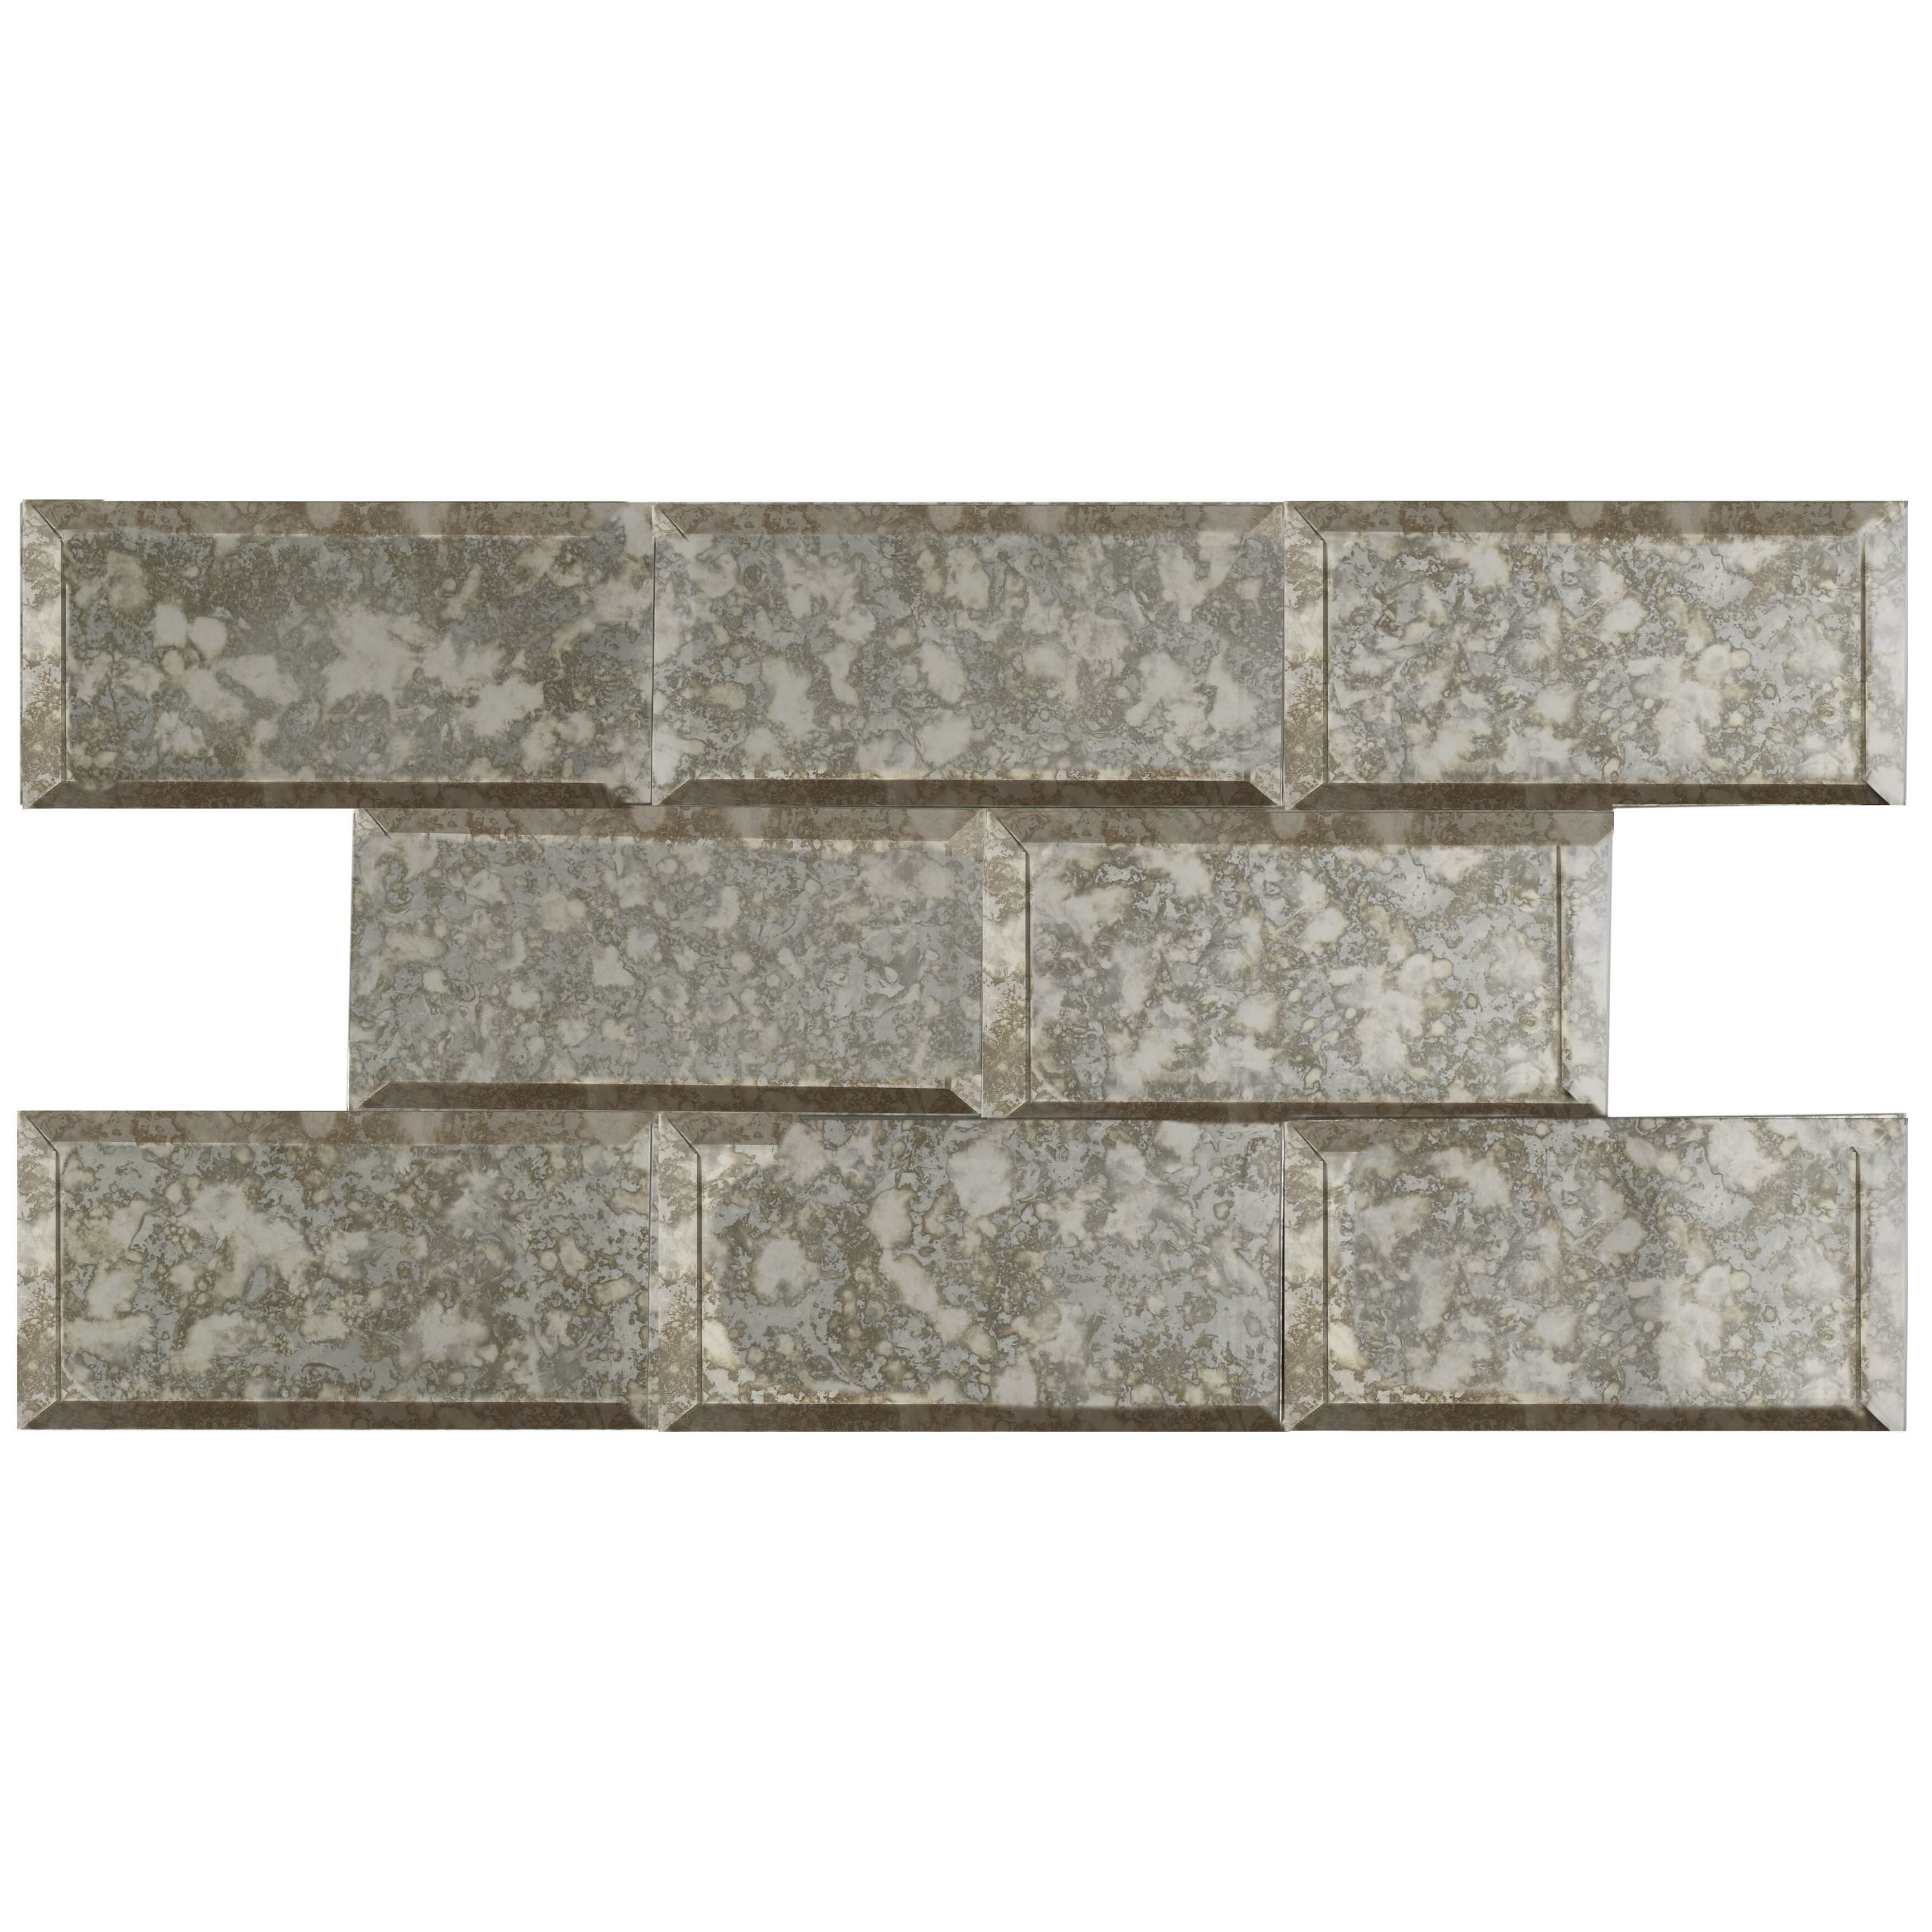 Elitetile lumin 3 x 6 glass subway tile in antique mirror elitetile lumin 3 x 6 glass subway tile in antique mirror reviews wayfair dailygadgetfo Image collections